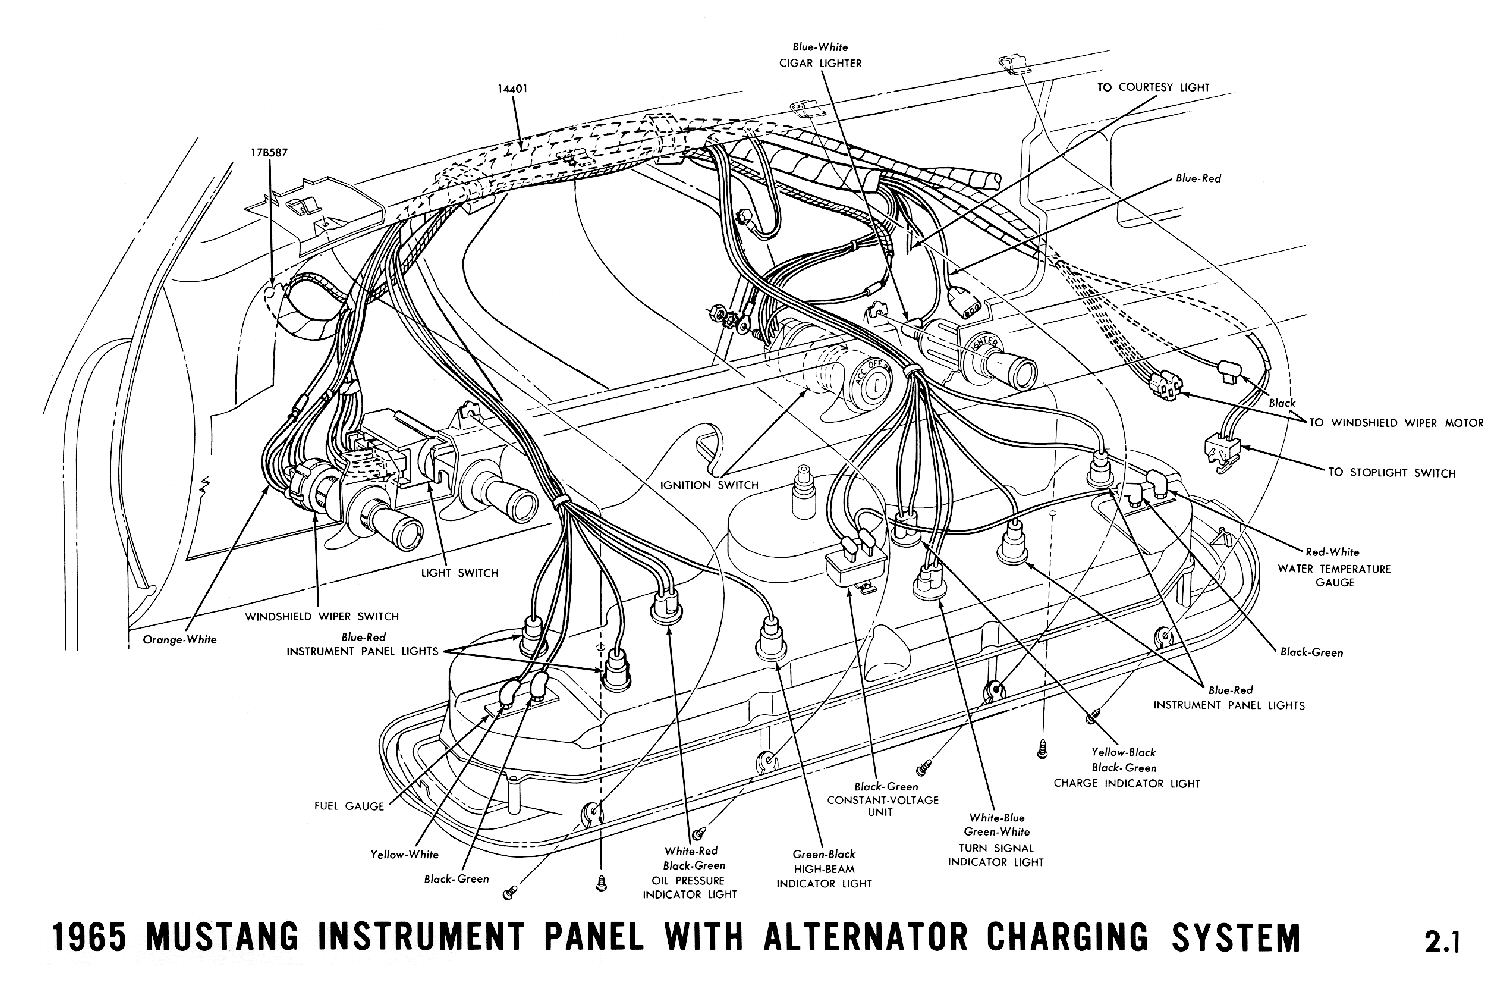 1965 Mustang Wiring Diagrams on 1969 chevelle brake line diagram